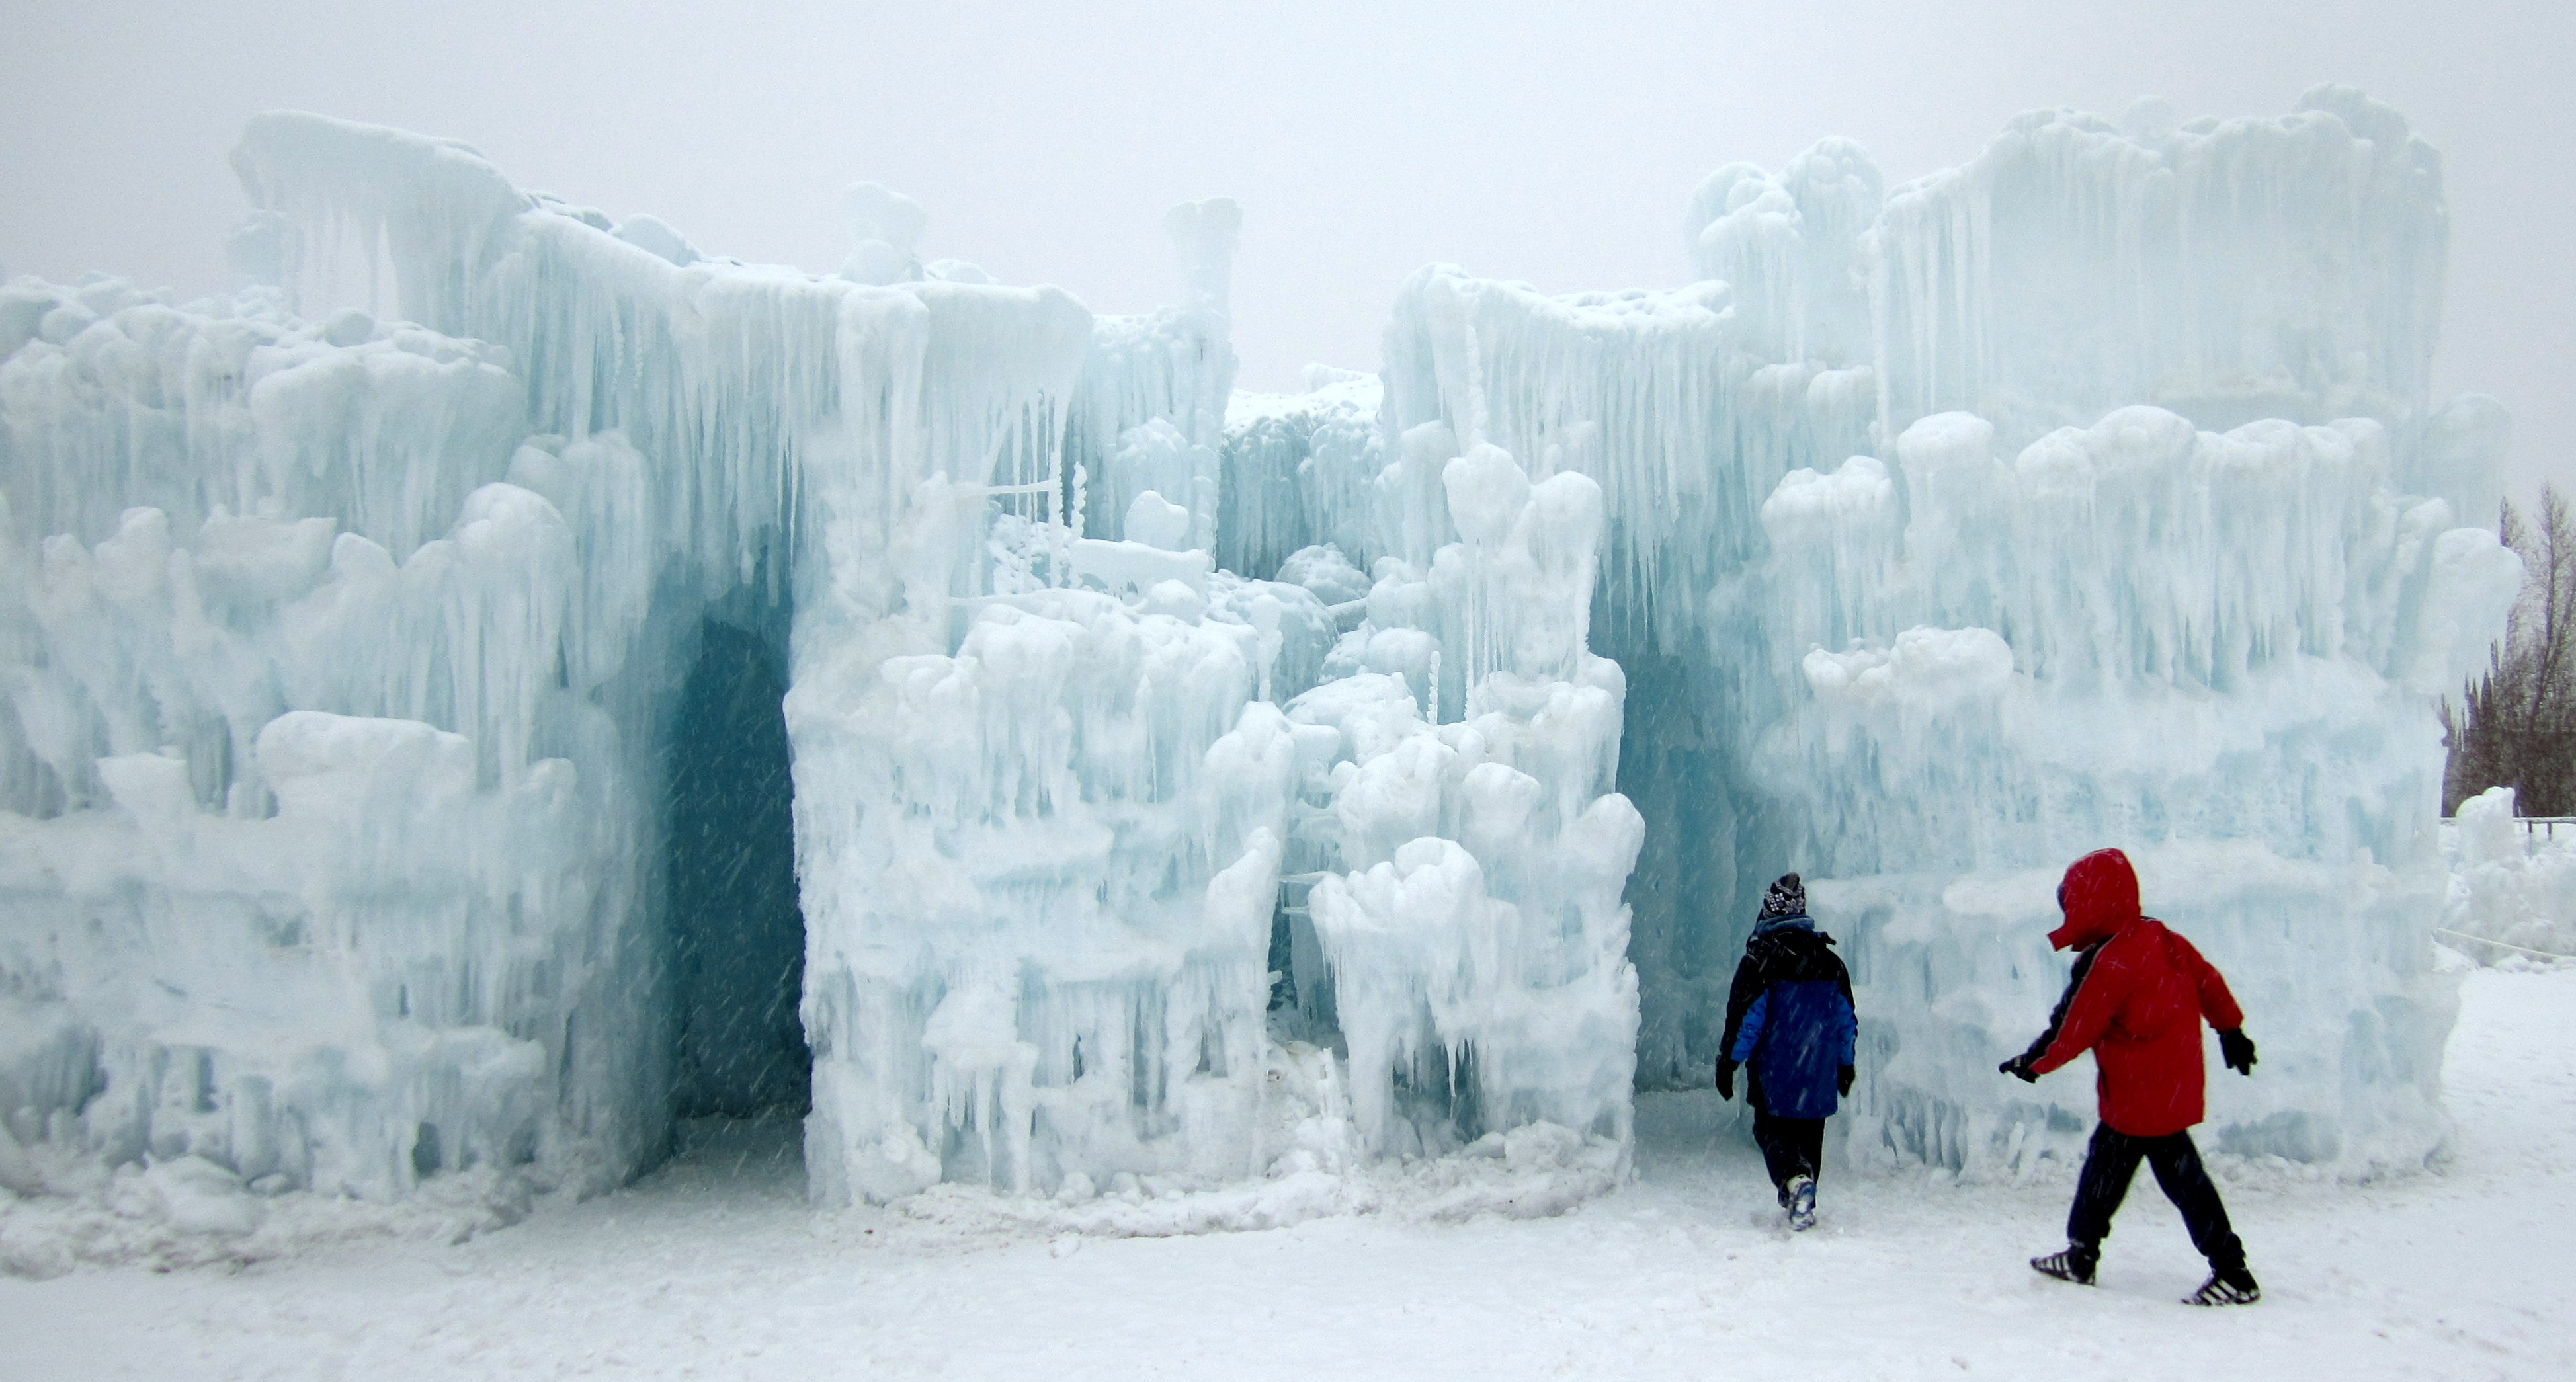 Morning Ice Castles 009